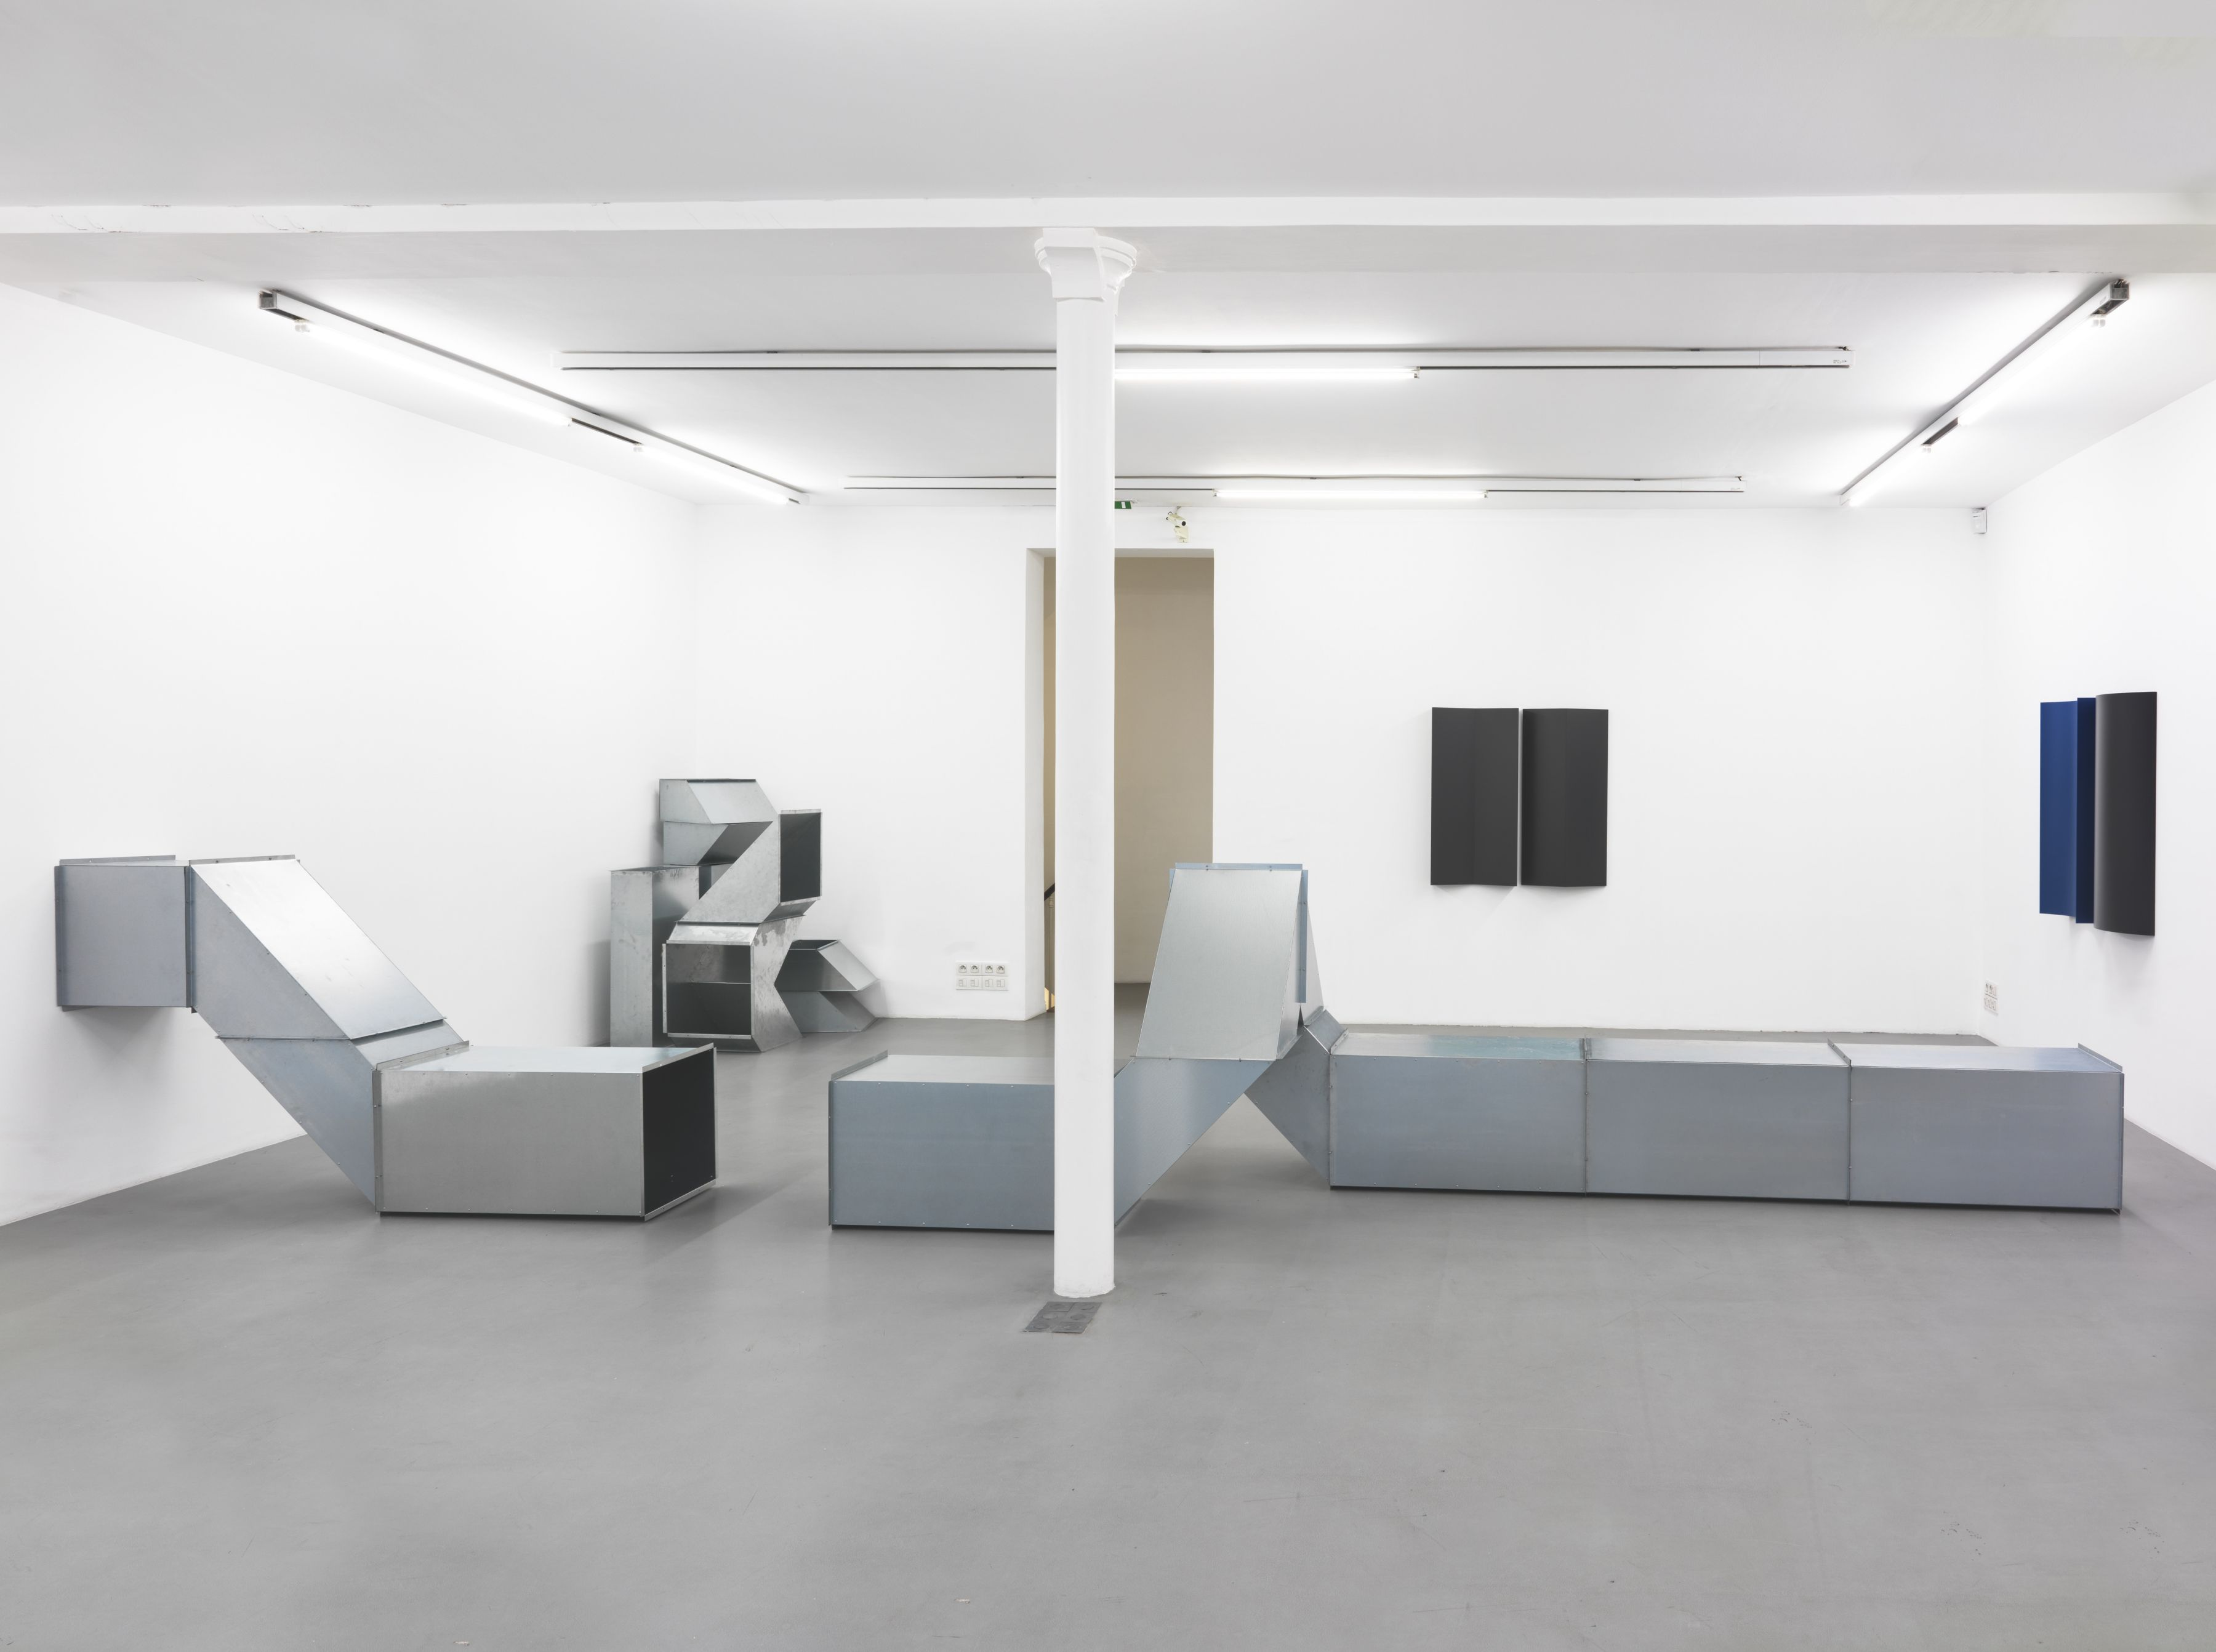 Charlotte Posenenske: Le même, autrement - The same, but different – installation view 6